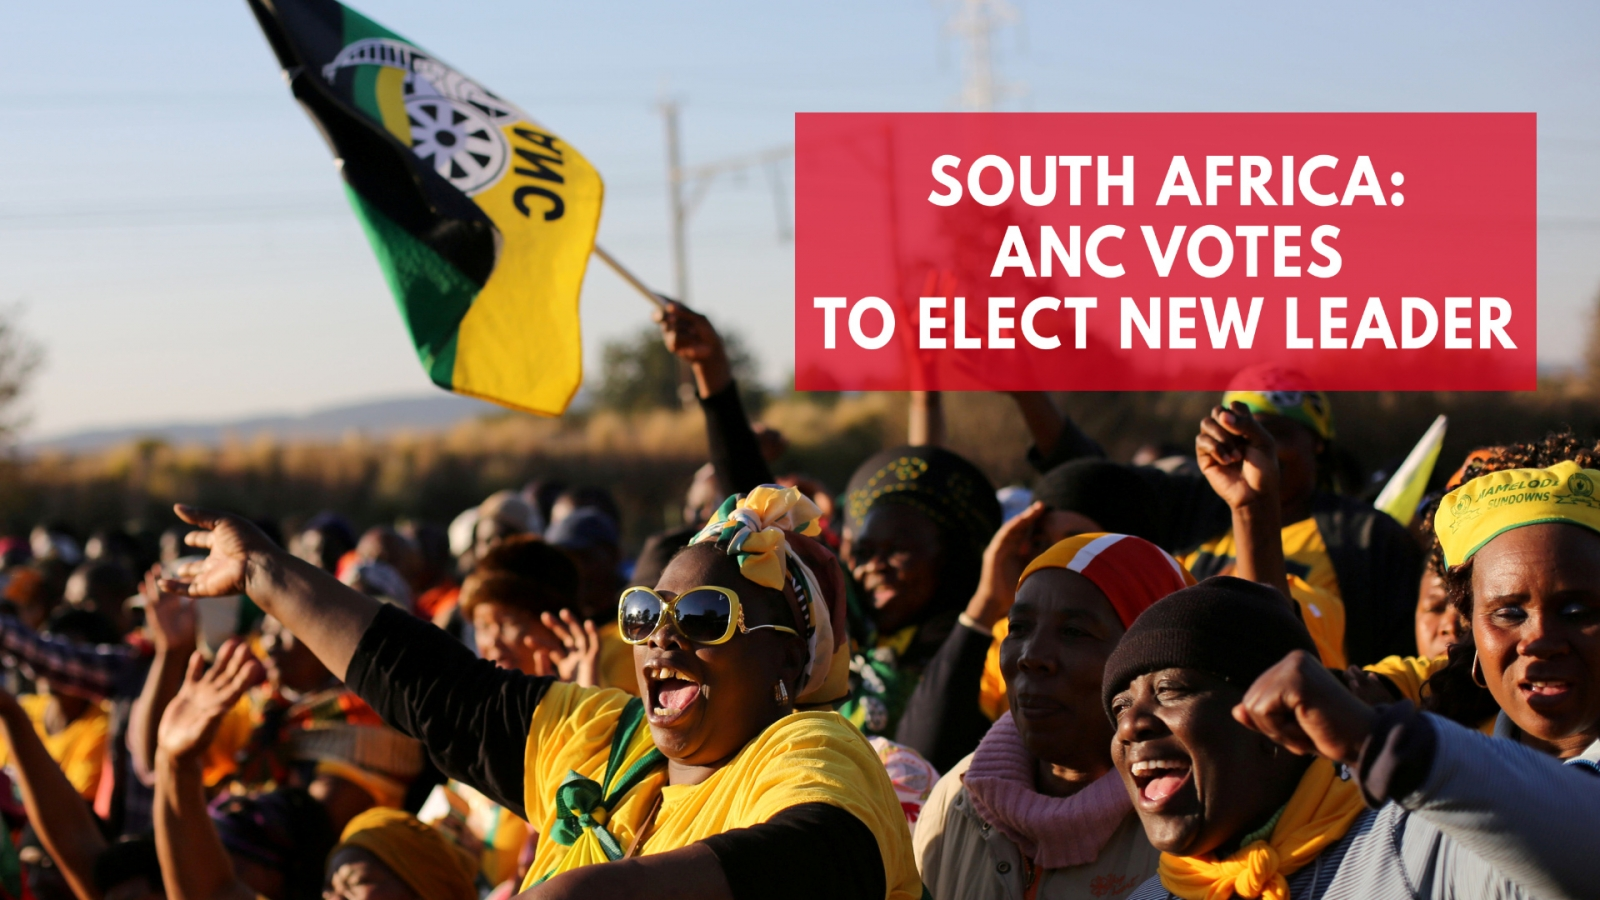 South Africa's ANC votes to elect new leader